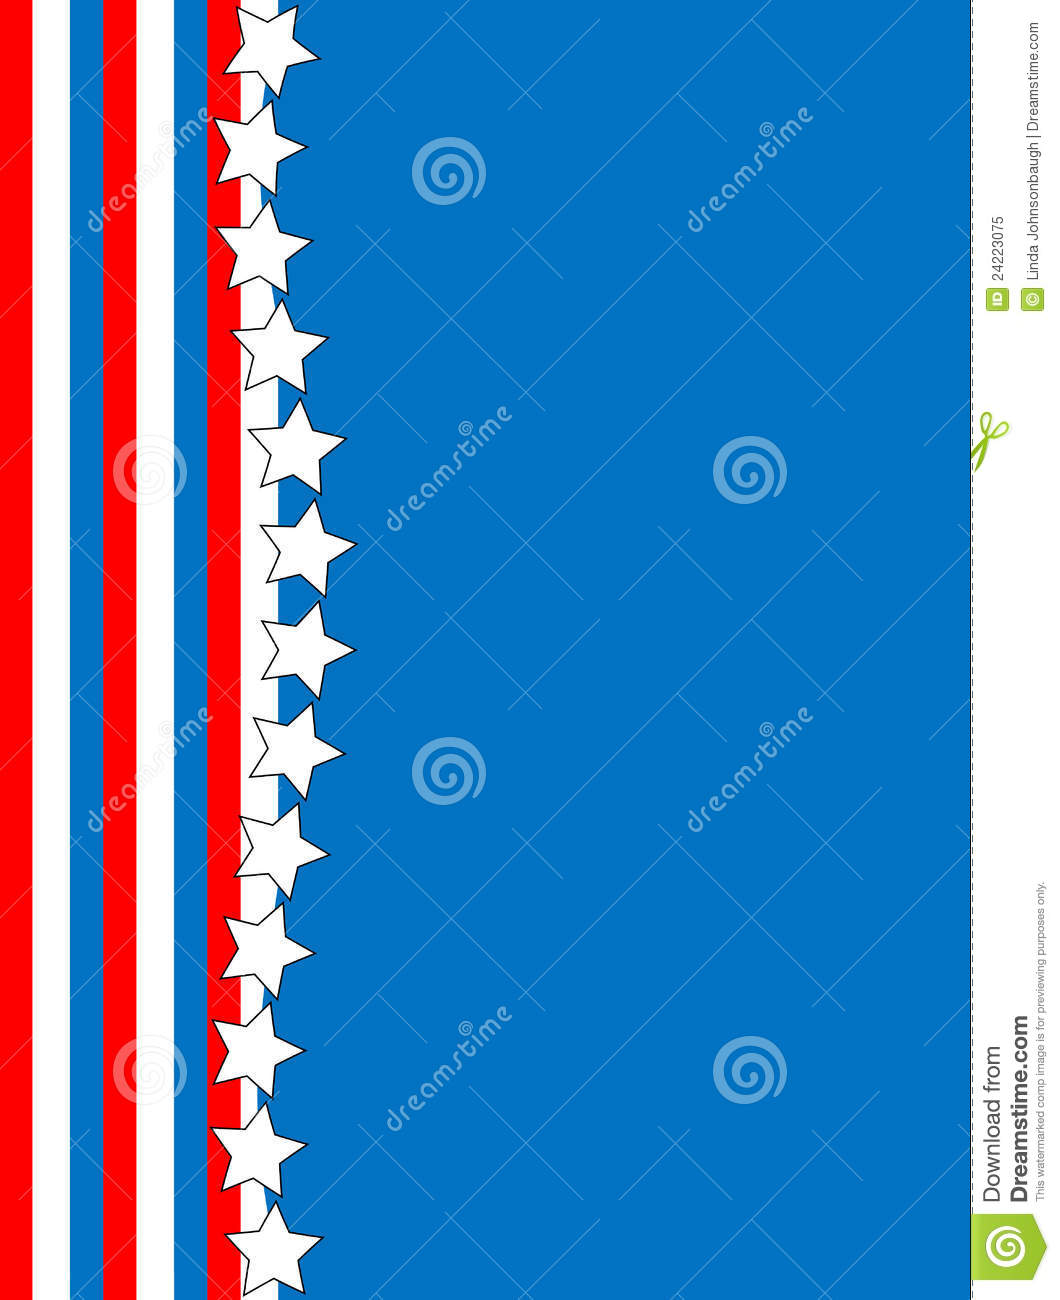 Vector Red White Blue Star Striped Background Royalty Free Stock Photo ...